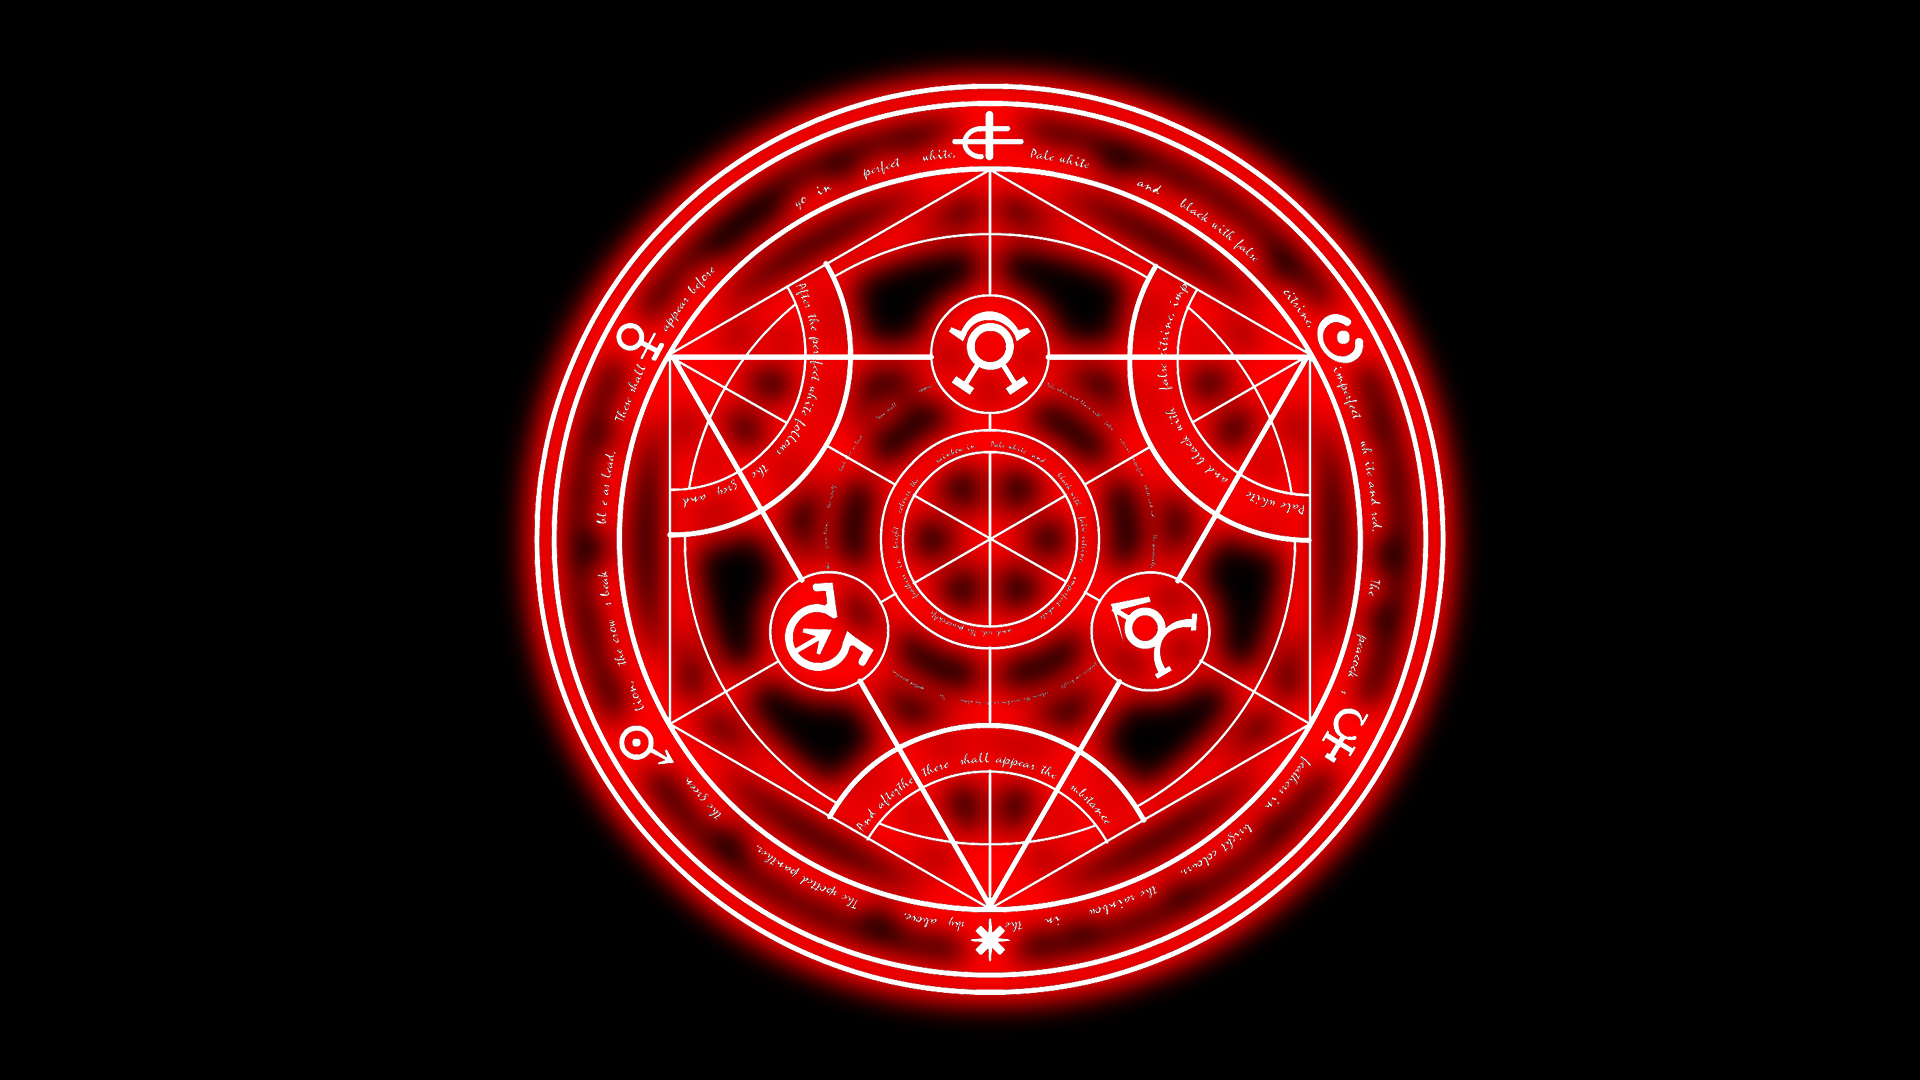 FullMetal Alchemist Computer Wallpapers Desktop Backgrounds 1920x1080